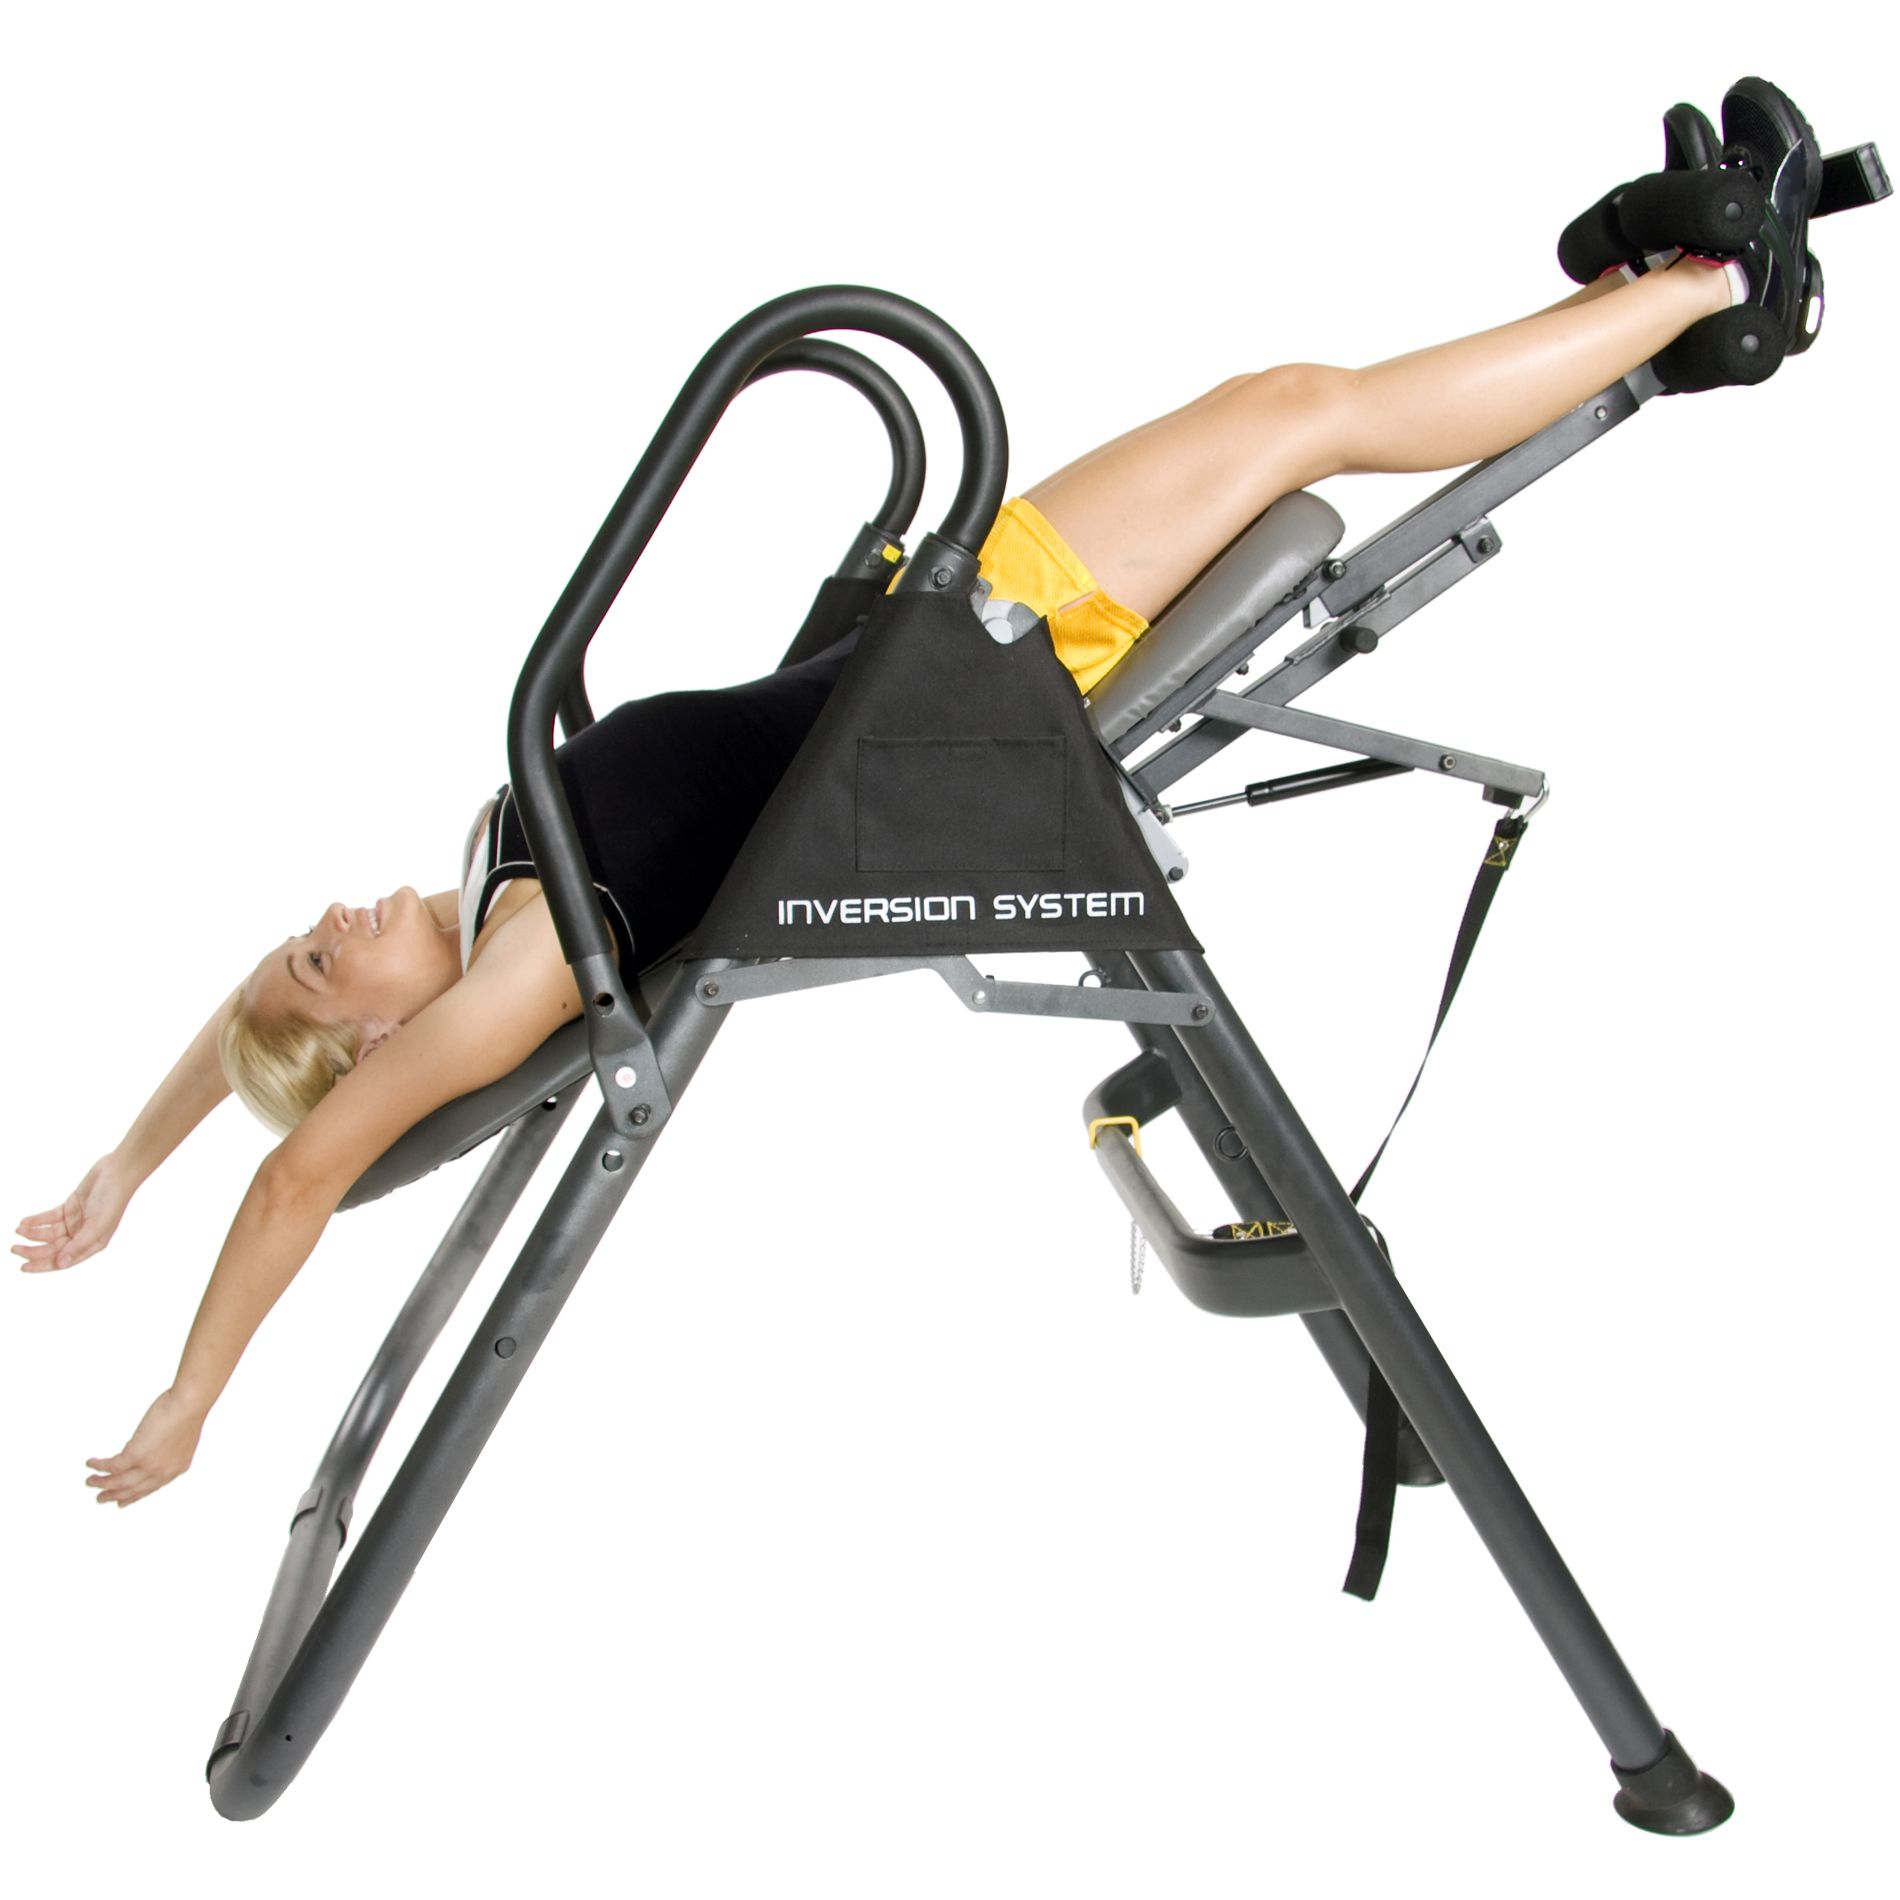 Body Champ IT9910 Gravity Inversion System